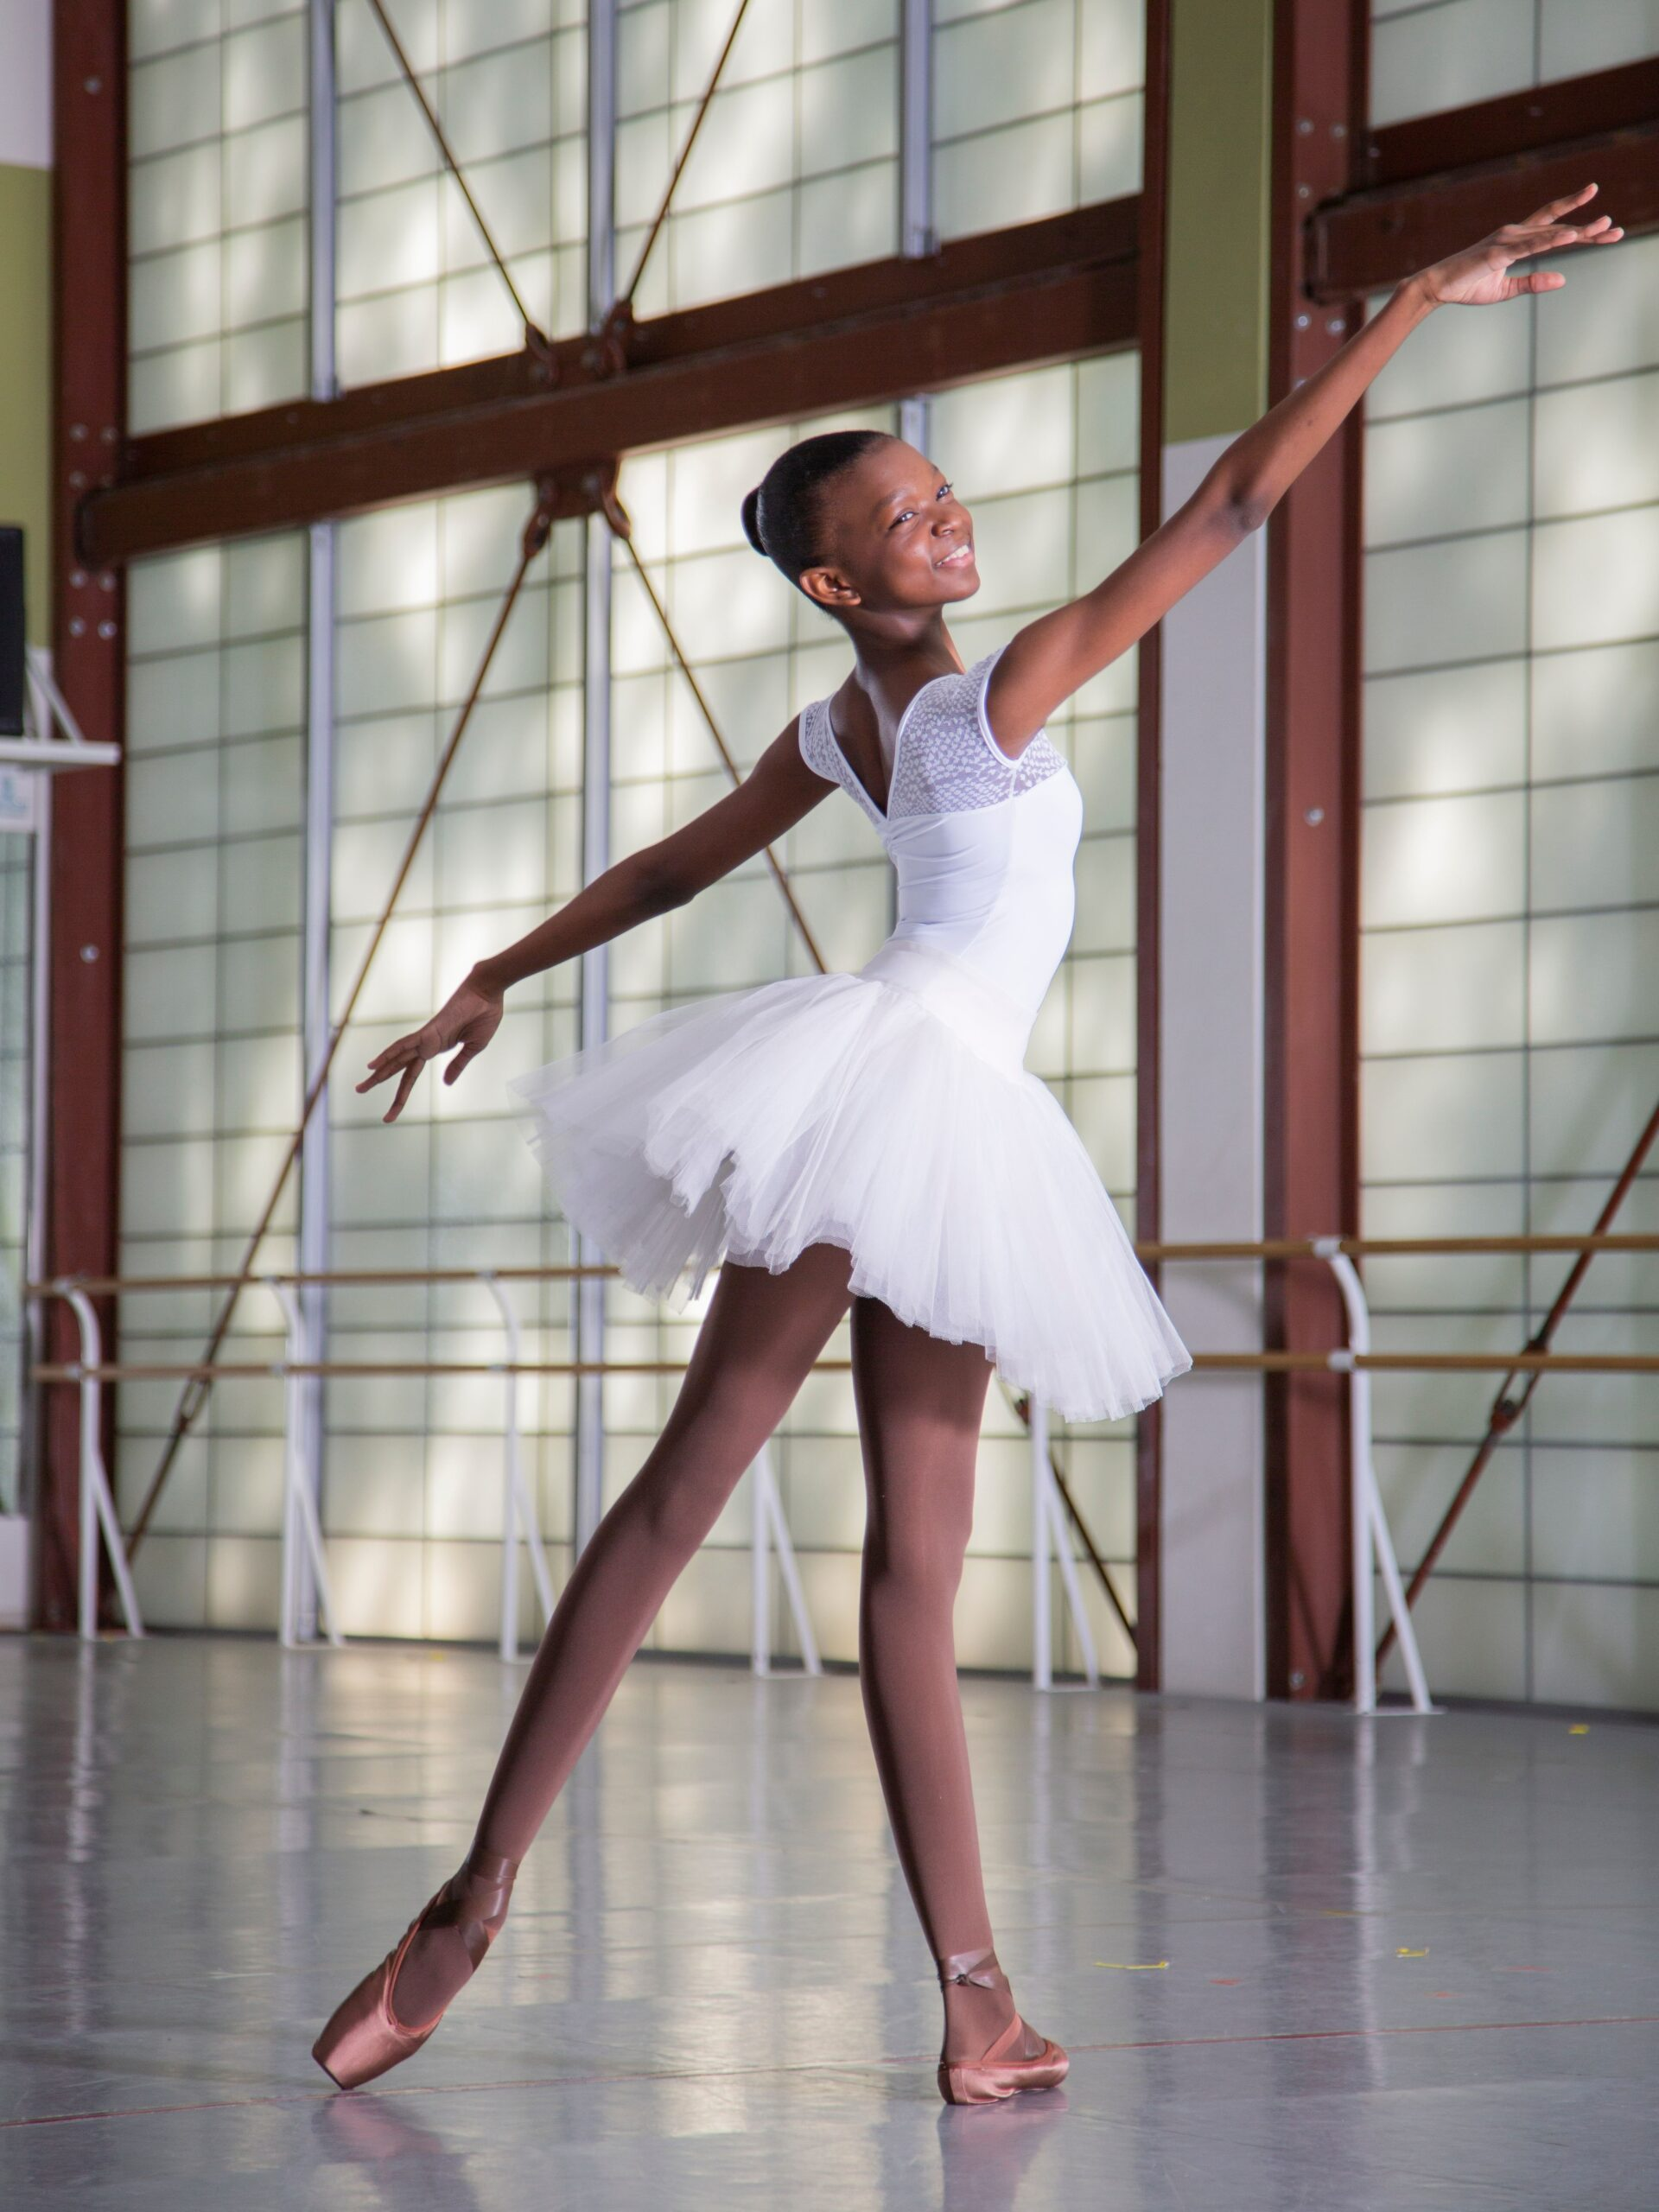 Black ballerina in while tutu outfit poses with tights and shoes that match her darker complexion.